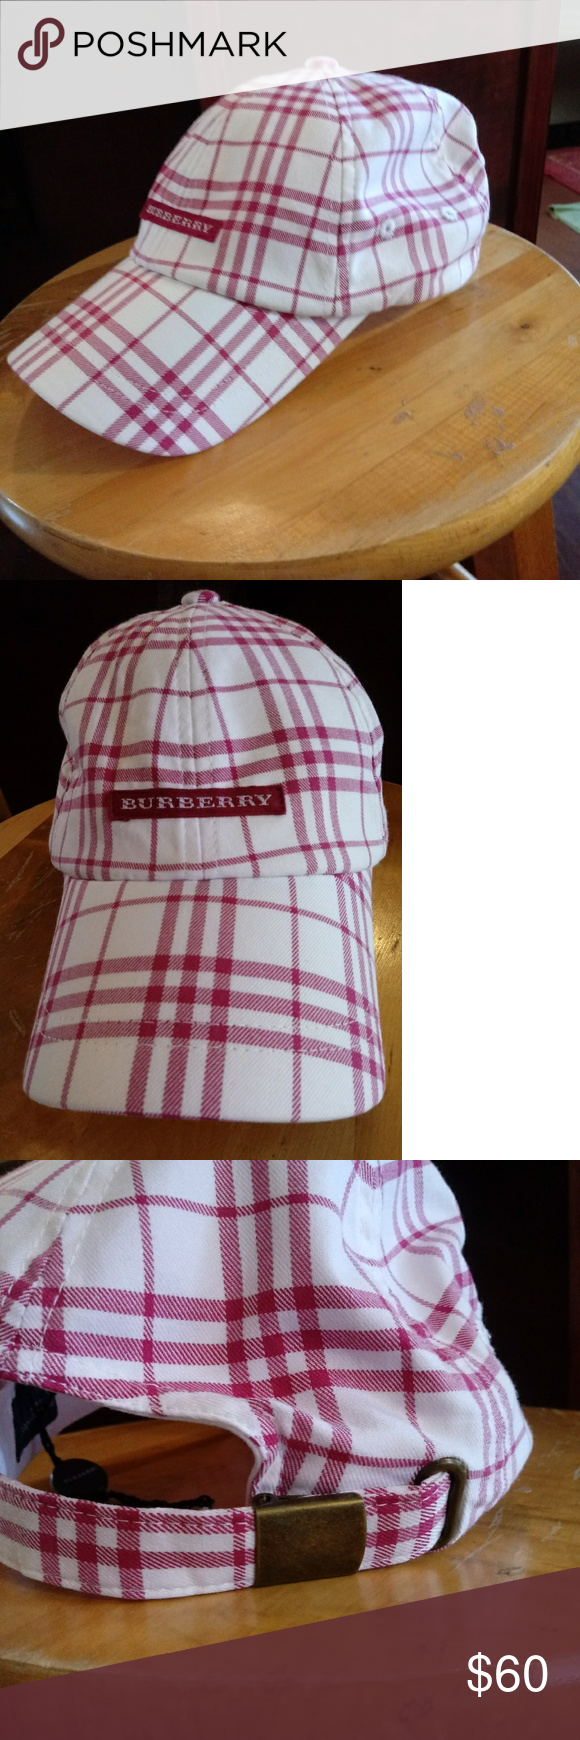 9617e786513 Burberry Red White Plaid Golf Cap Burberry Red White Plaid ⛳ Golf Cap. One  Size. Excellent used condition. No stains or tears. Adjustable in the back.